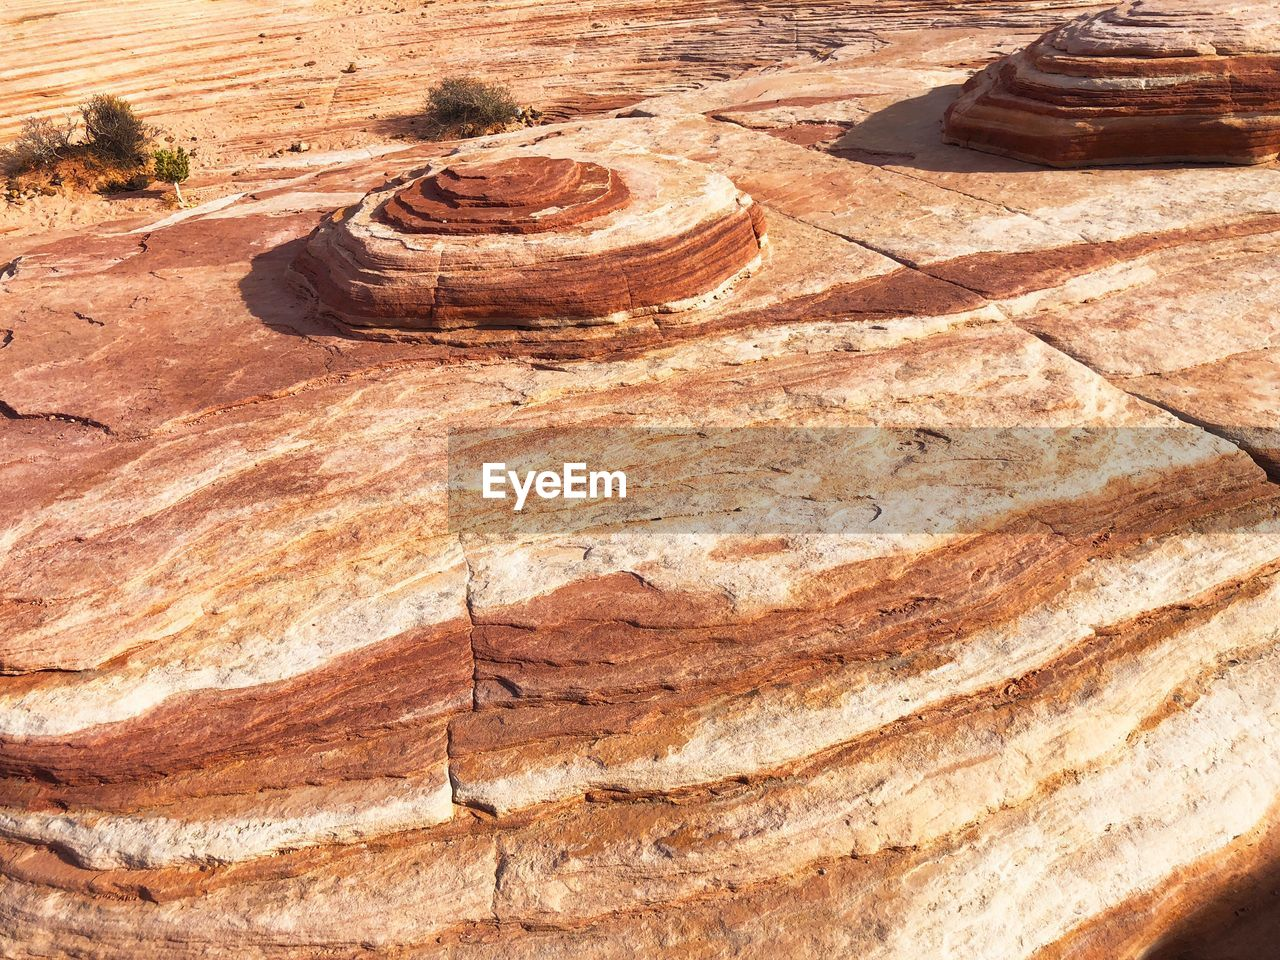 rock, no people, brown, rock - object, solid, rock formation, day, travel destinations, nature, geology, physical geography, non-urban scene, high angle view, tranquility, travel, outdoors, scenics - nature, pattern, tranquil scene, landscape, sandstone, arid climate, eroded